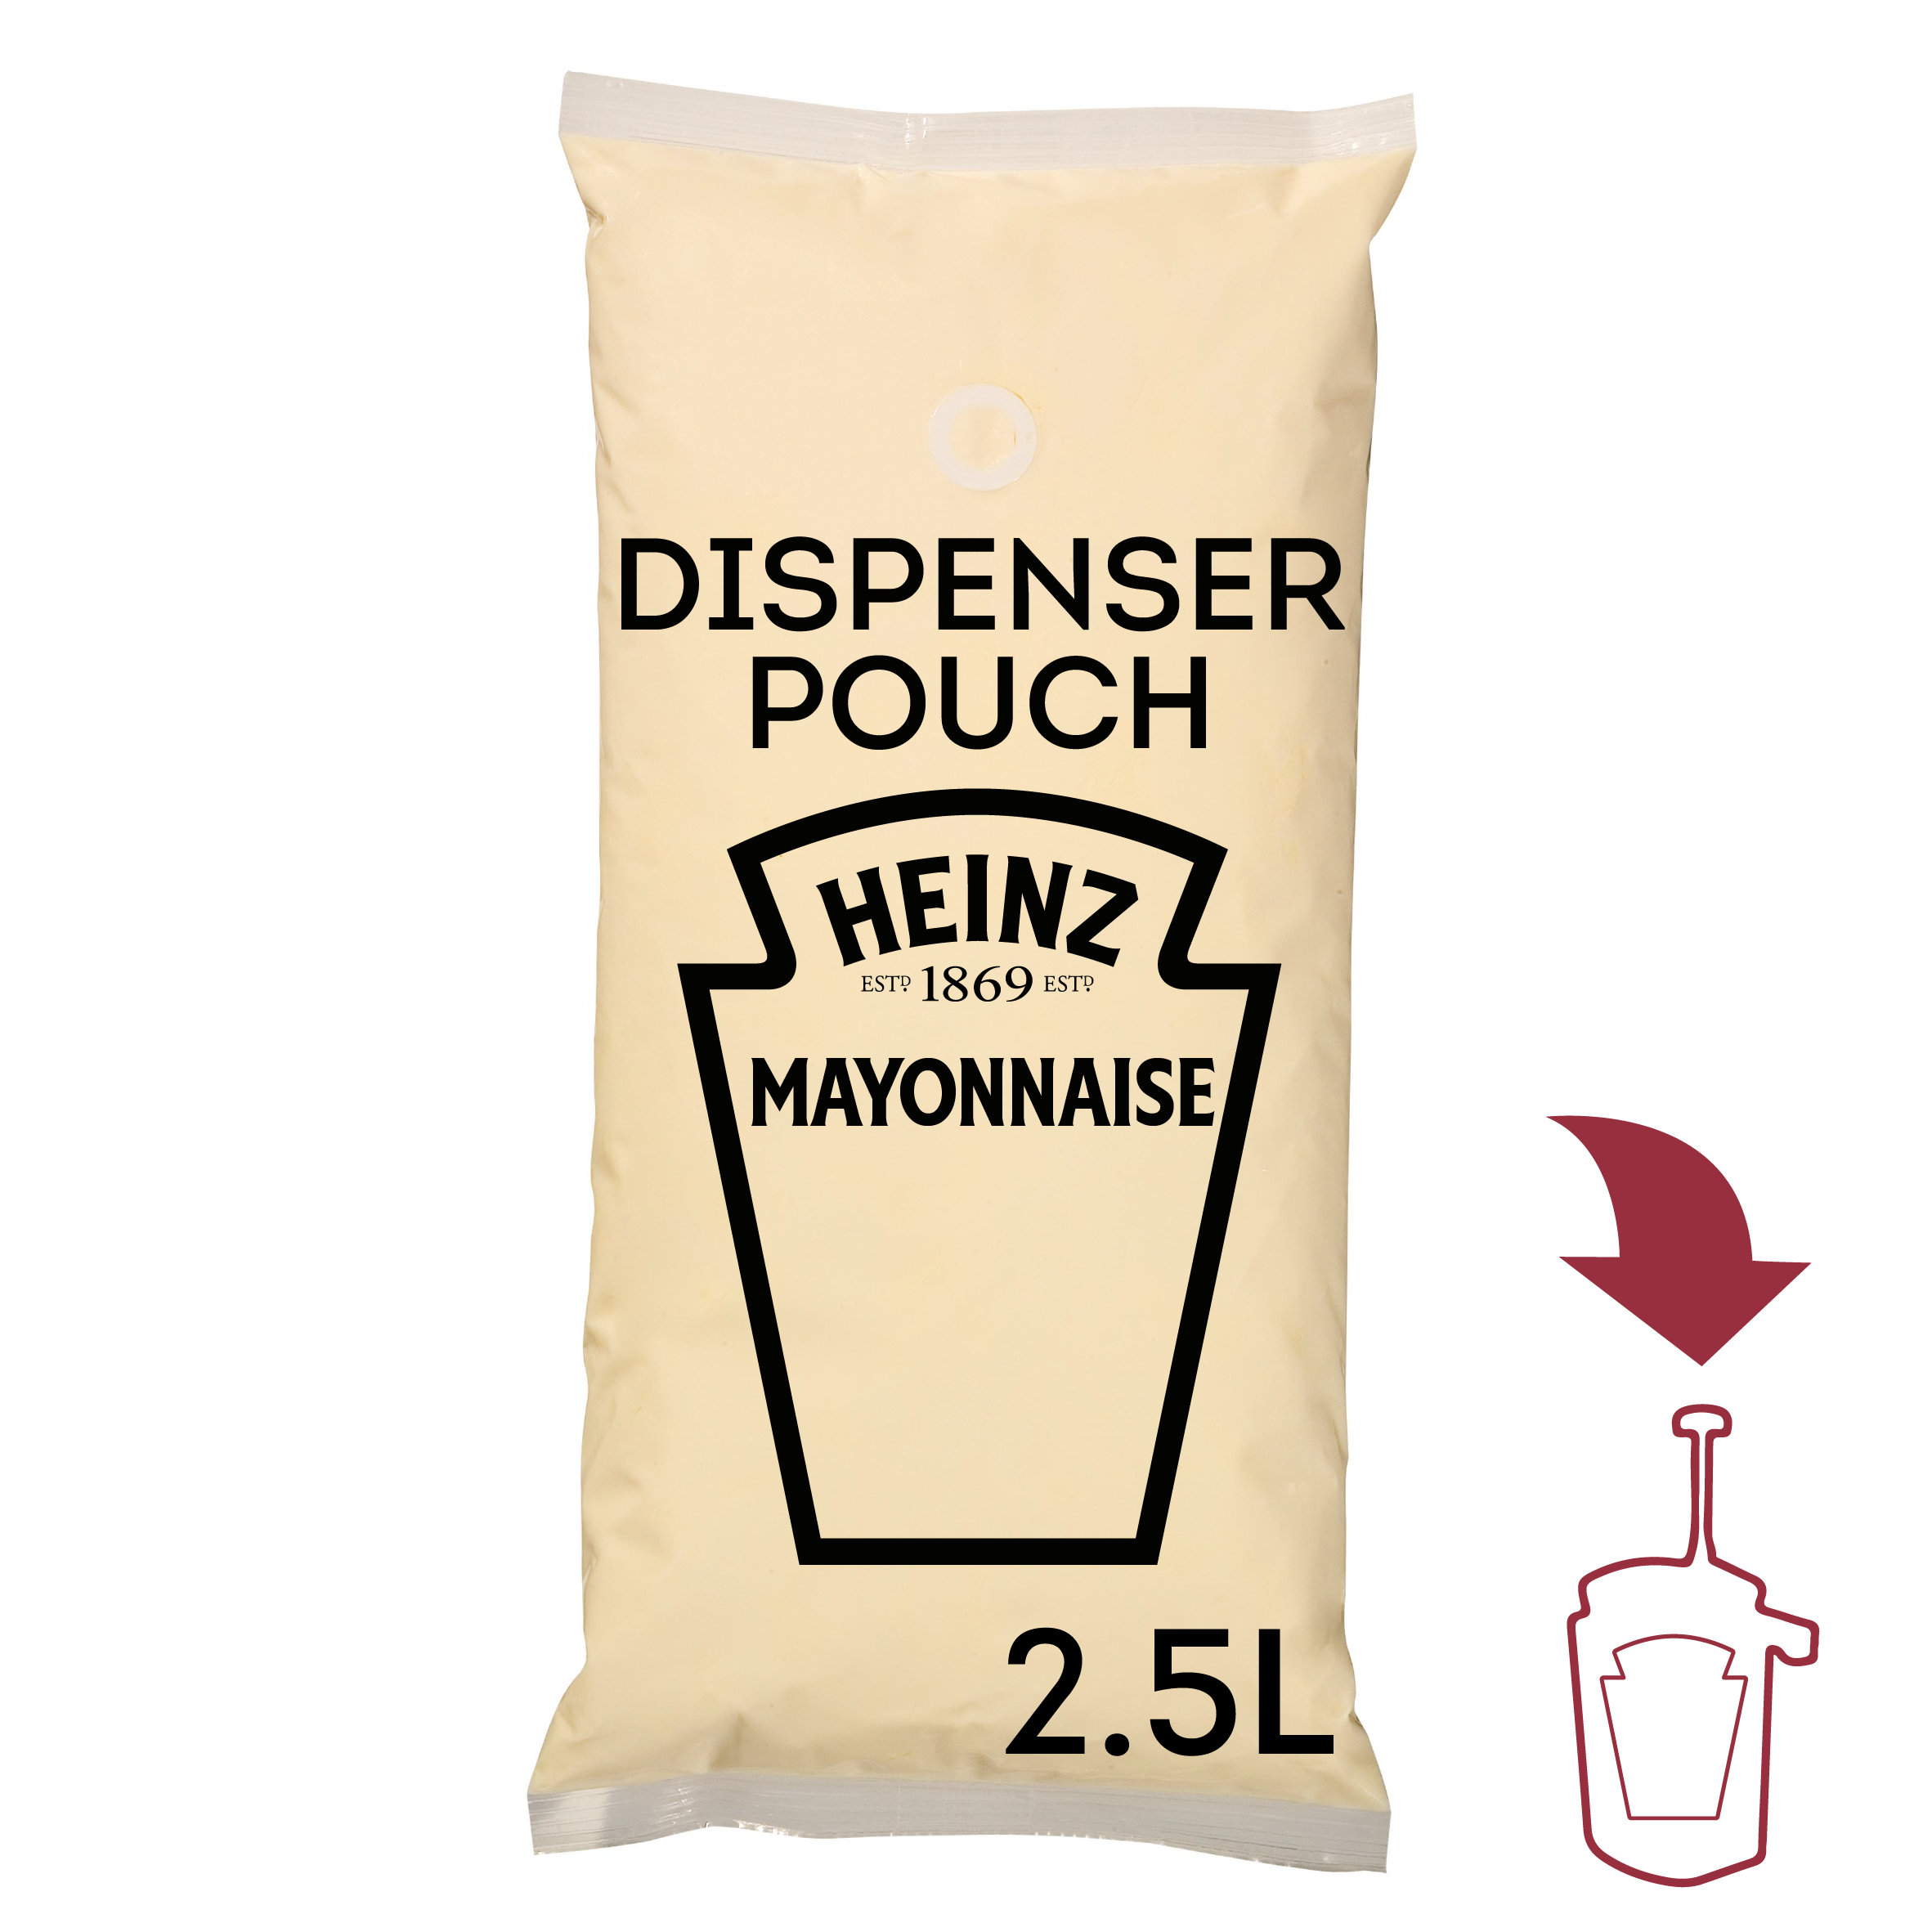 Heinz Mayonnaise 2.5L Dispenser pouch